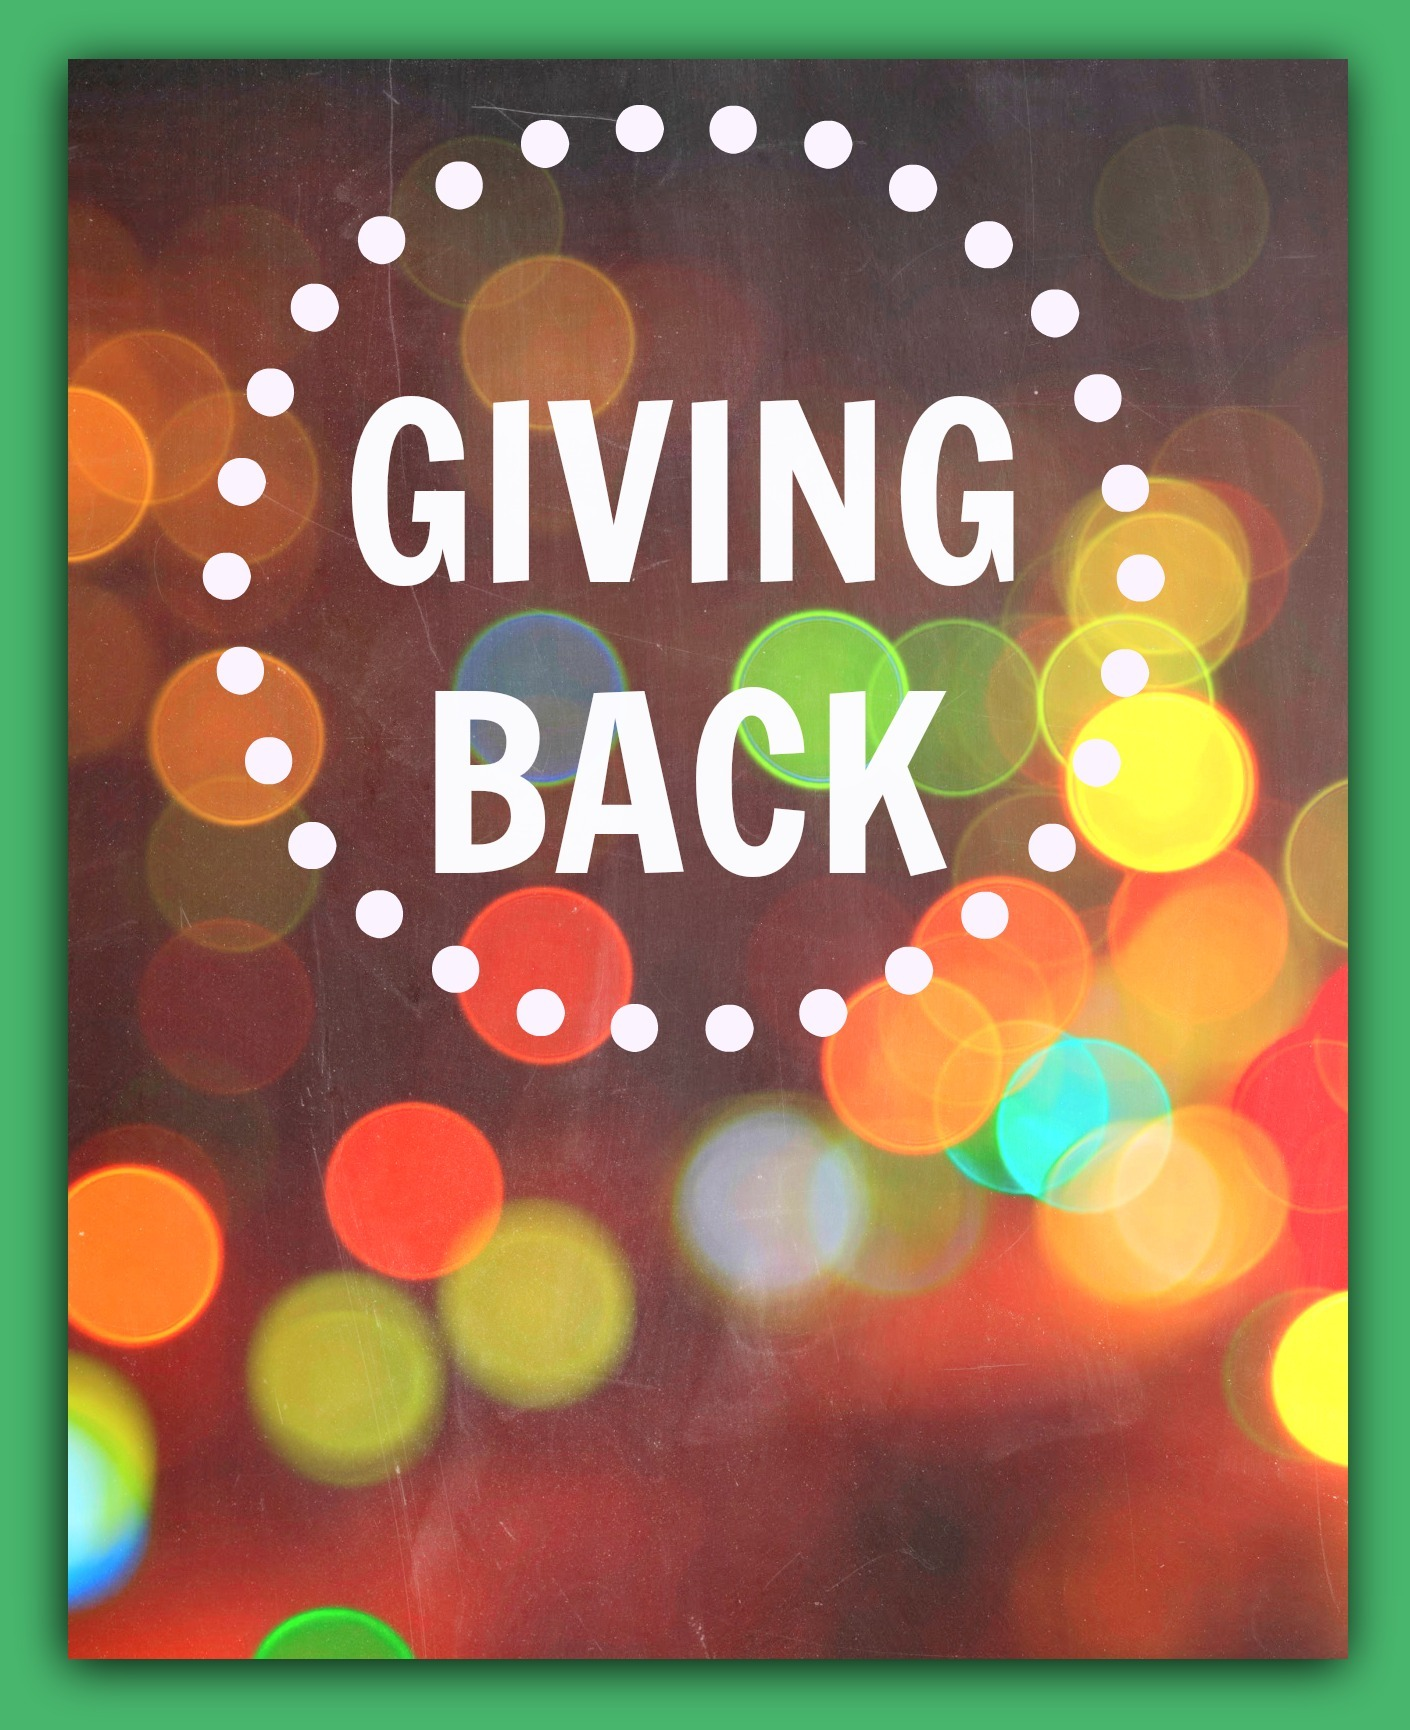 c01614a4812a9a39bf8e_GIVING-BACK.jpg